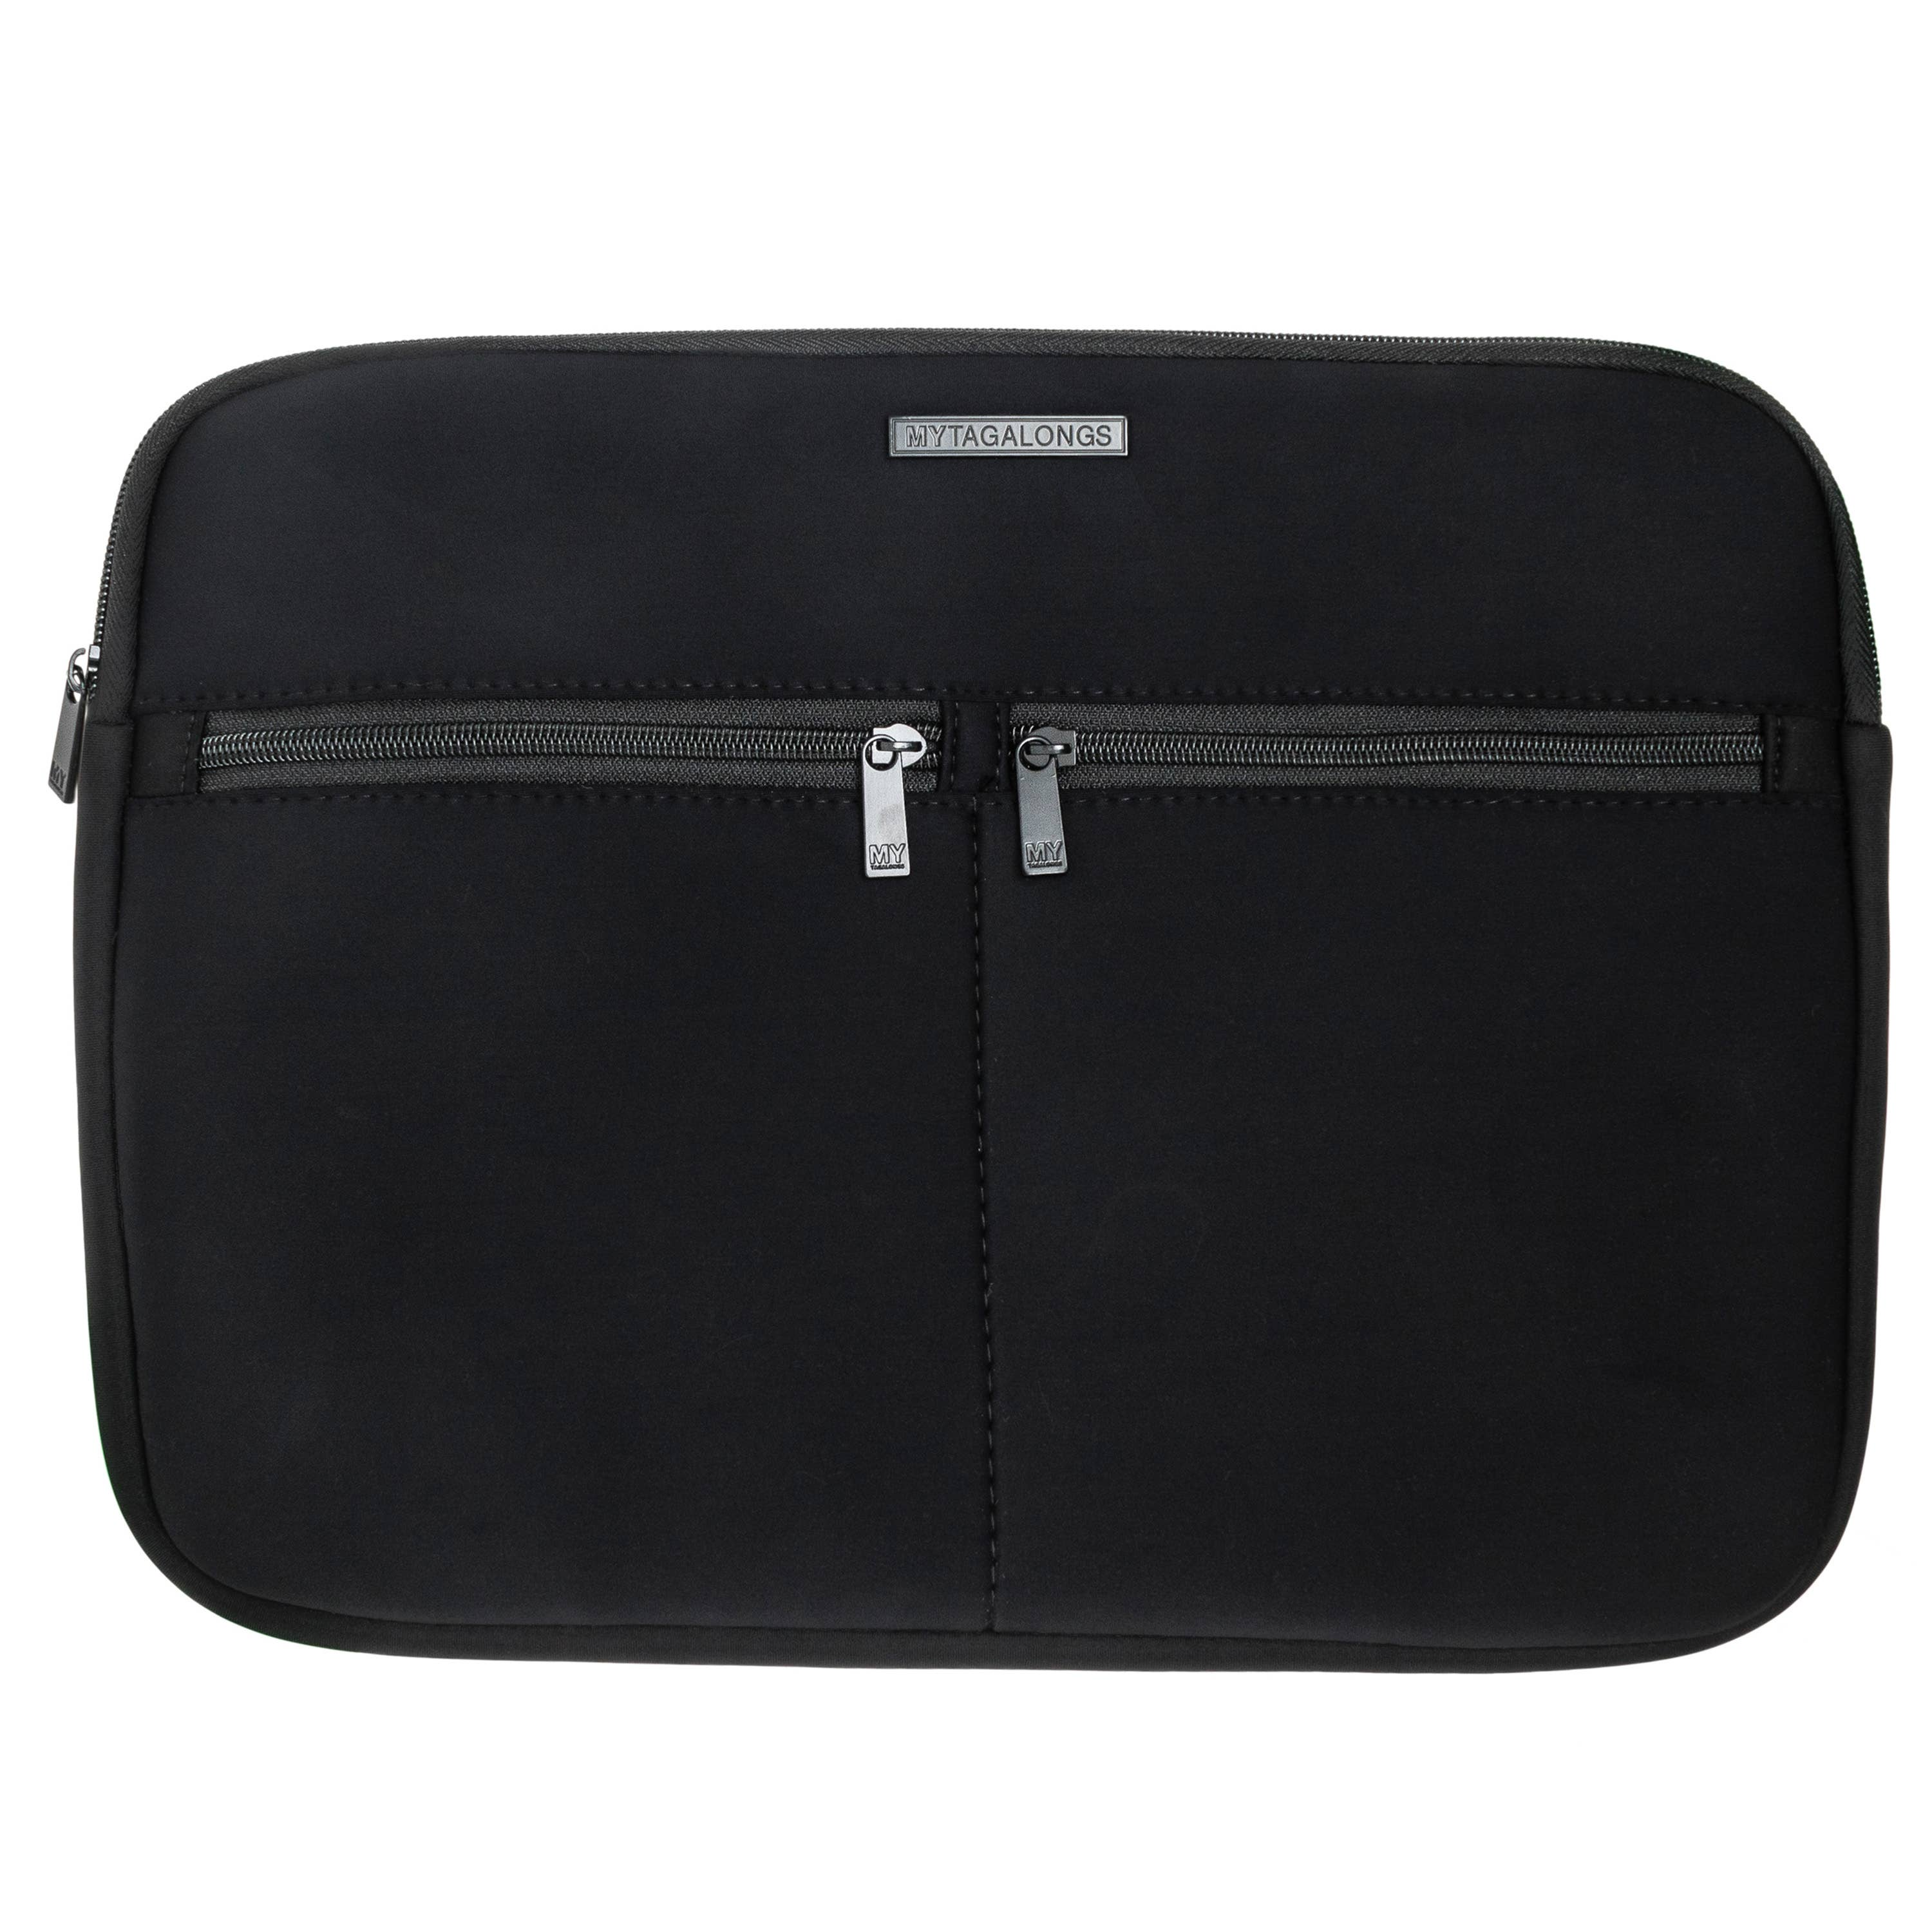 Laptop Sleeve - Everleigh Onyx